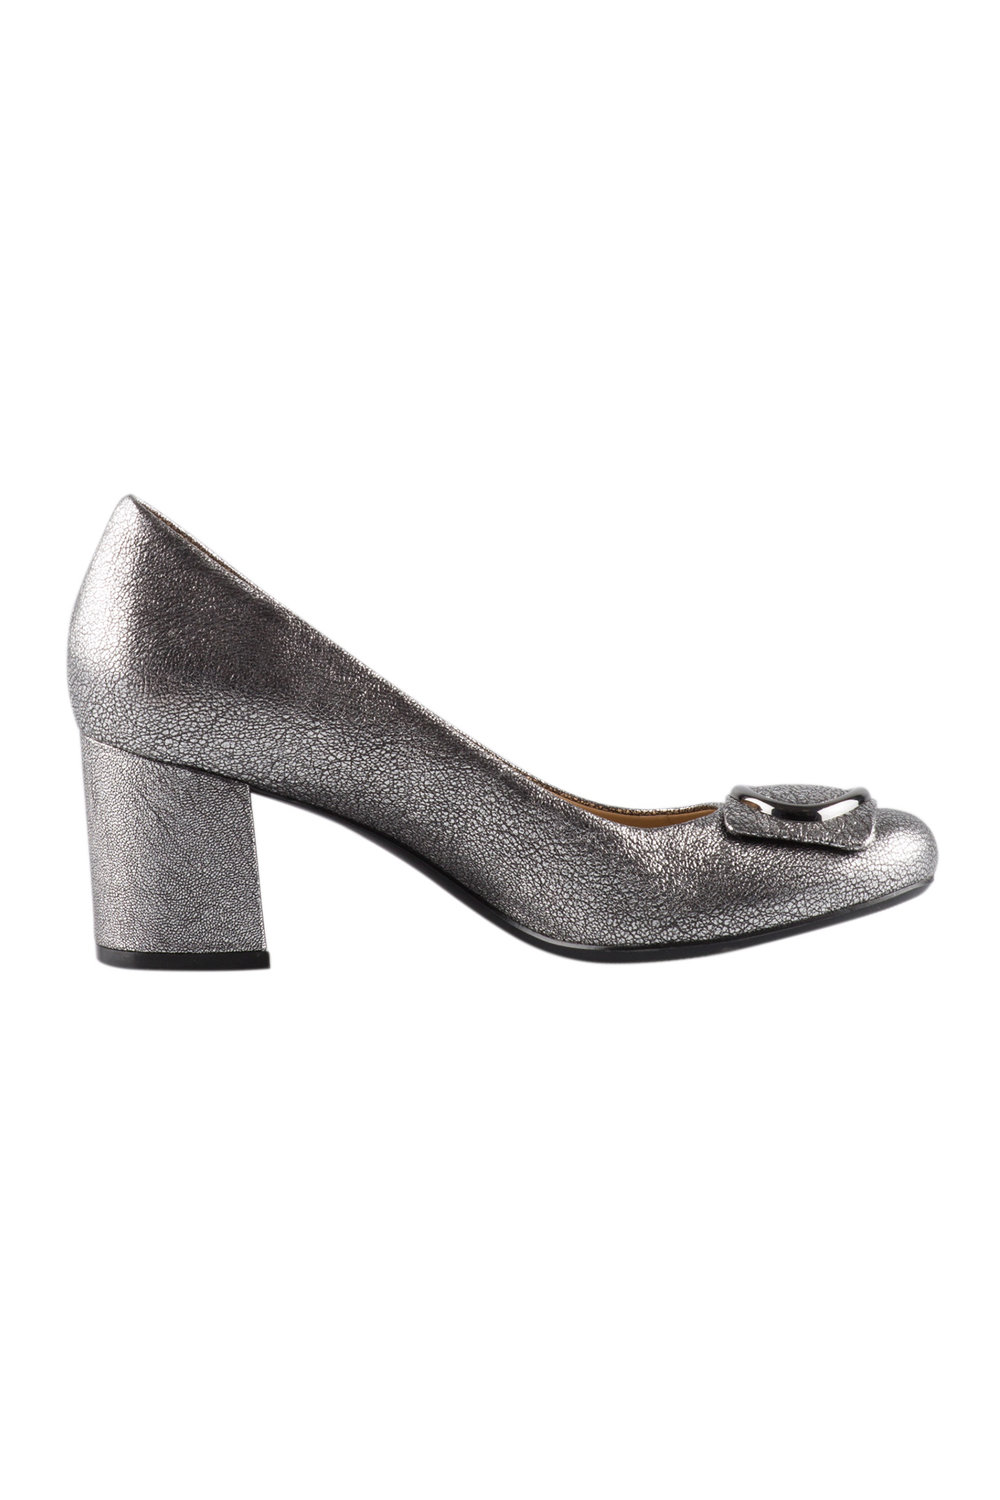 1ed6059f1a Naturalizer Wright Court Heel Online